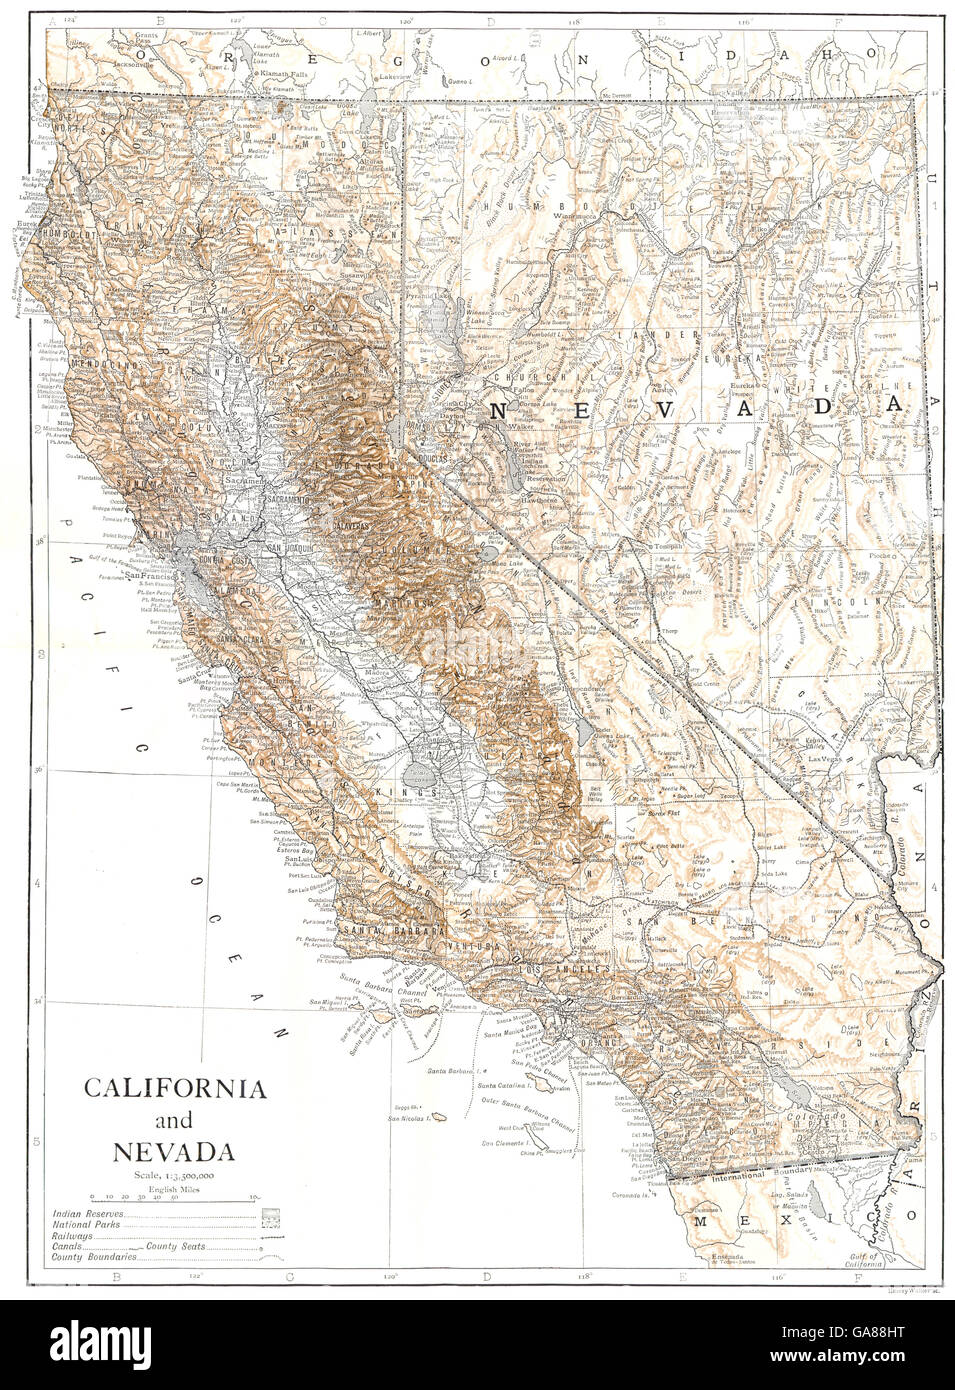 CALIFORNIA AND NEVADA: State map showing counties, 1910 ...